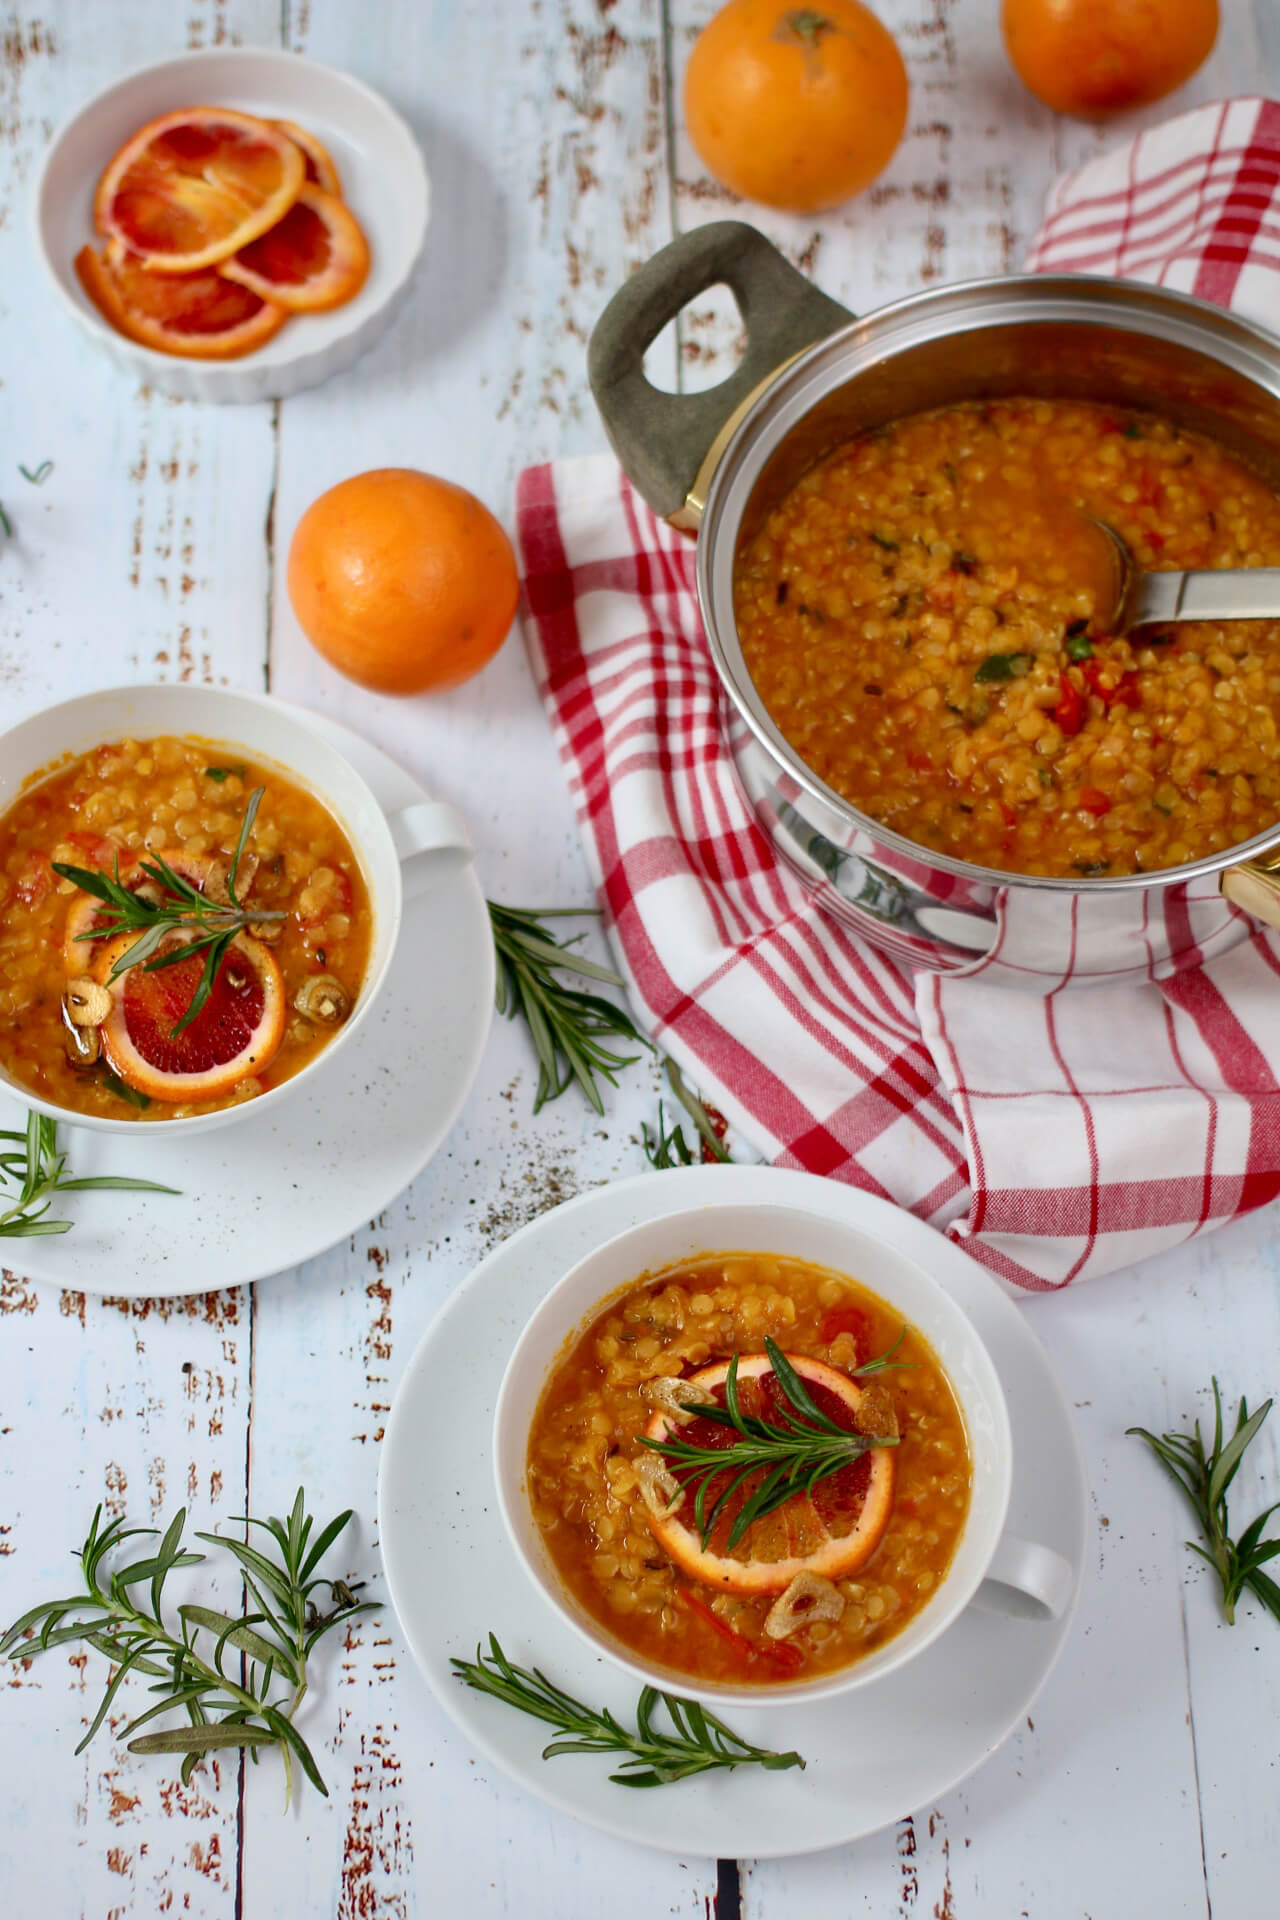 Rote Linsen Suppe Vegan